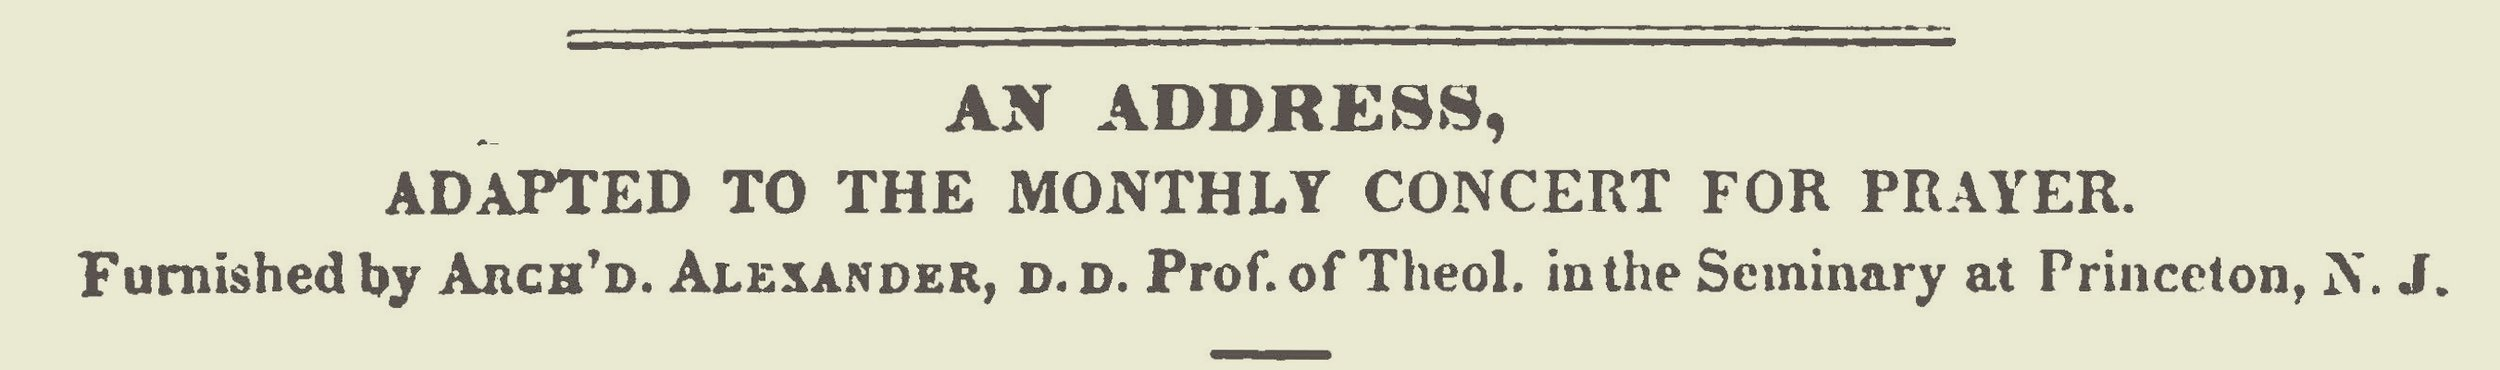 Alexander, Archibald, An Address Adapted to the Monthly Concert of Prayer Title Page.jpg